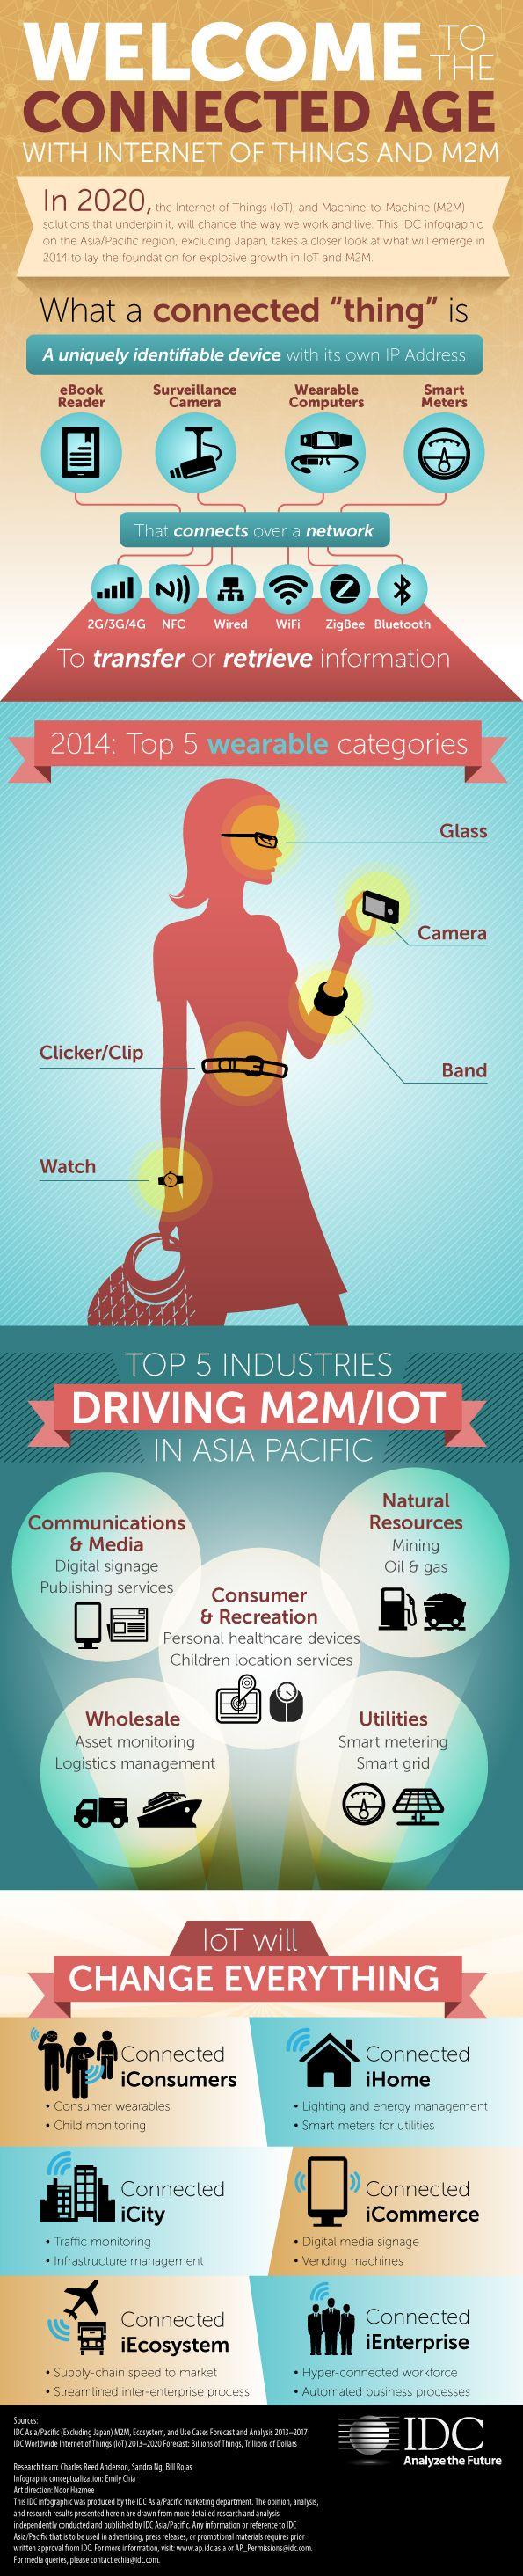 What Is The Internet Of Things (IOT) And The Future of Machine To Machine - (M2M) Communications?